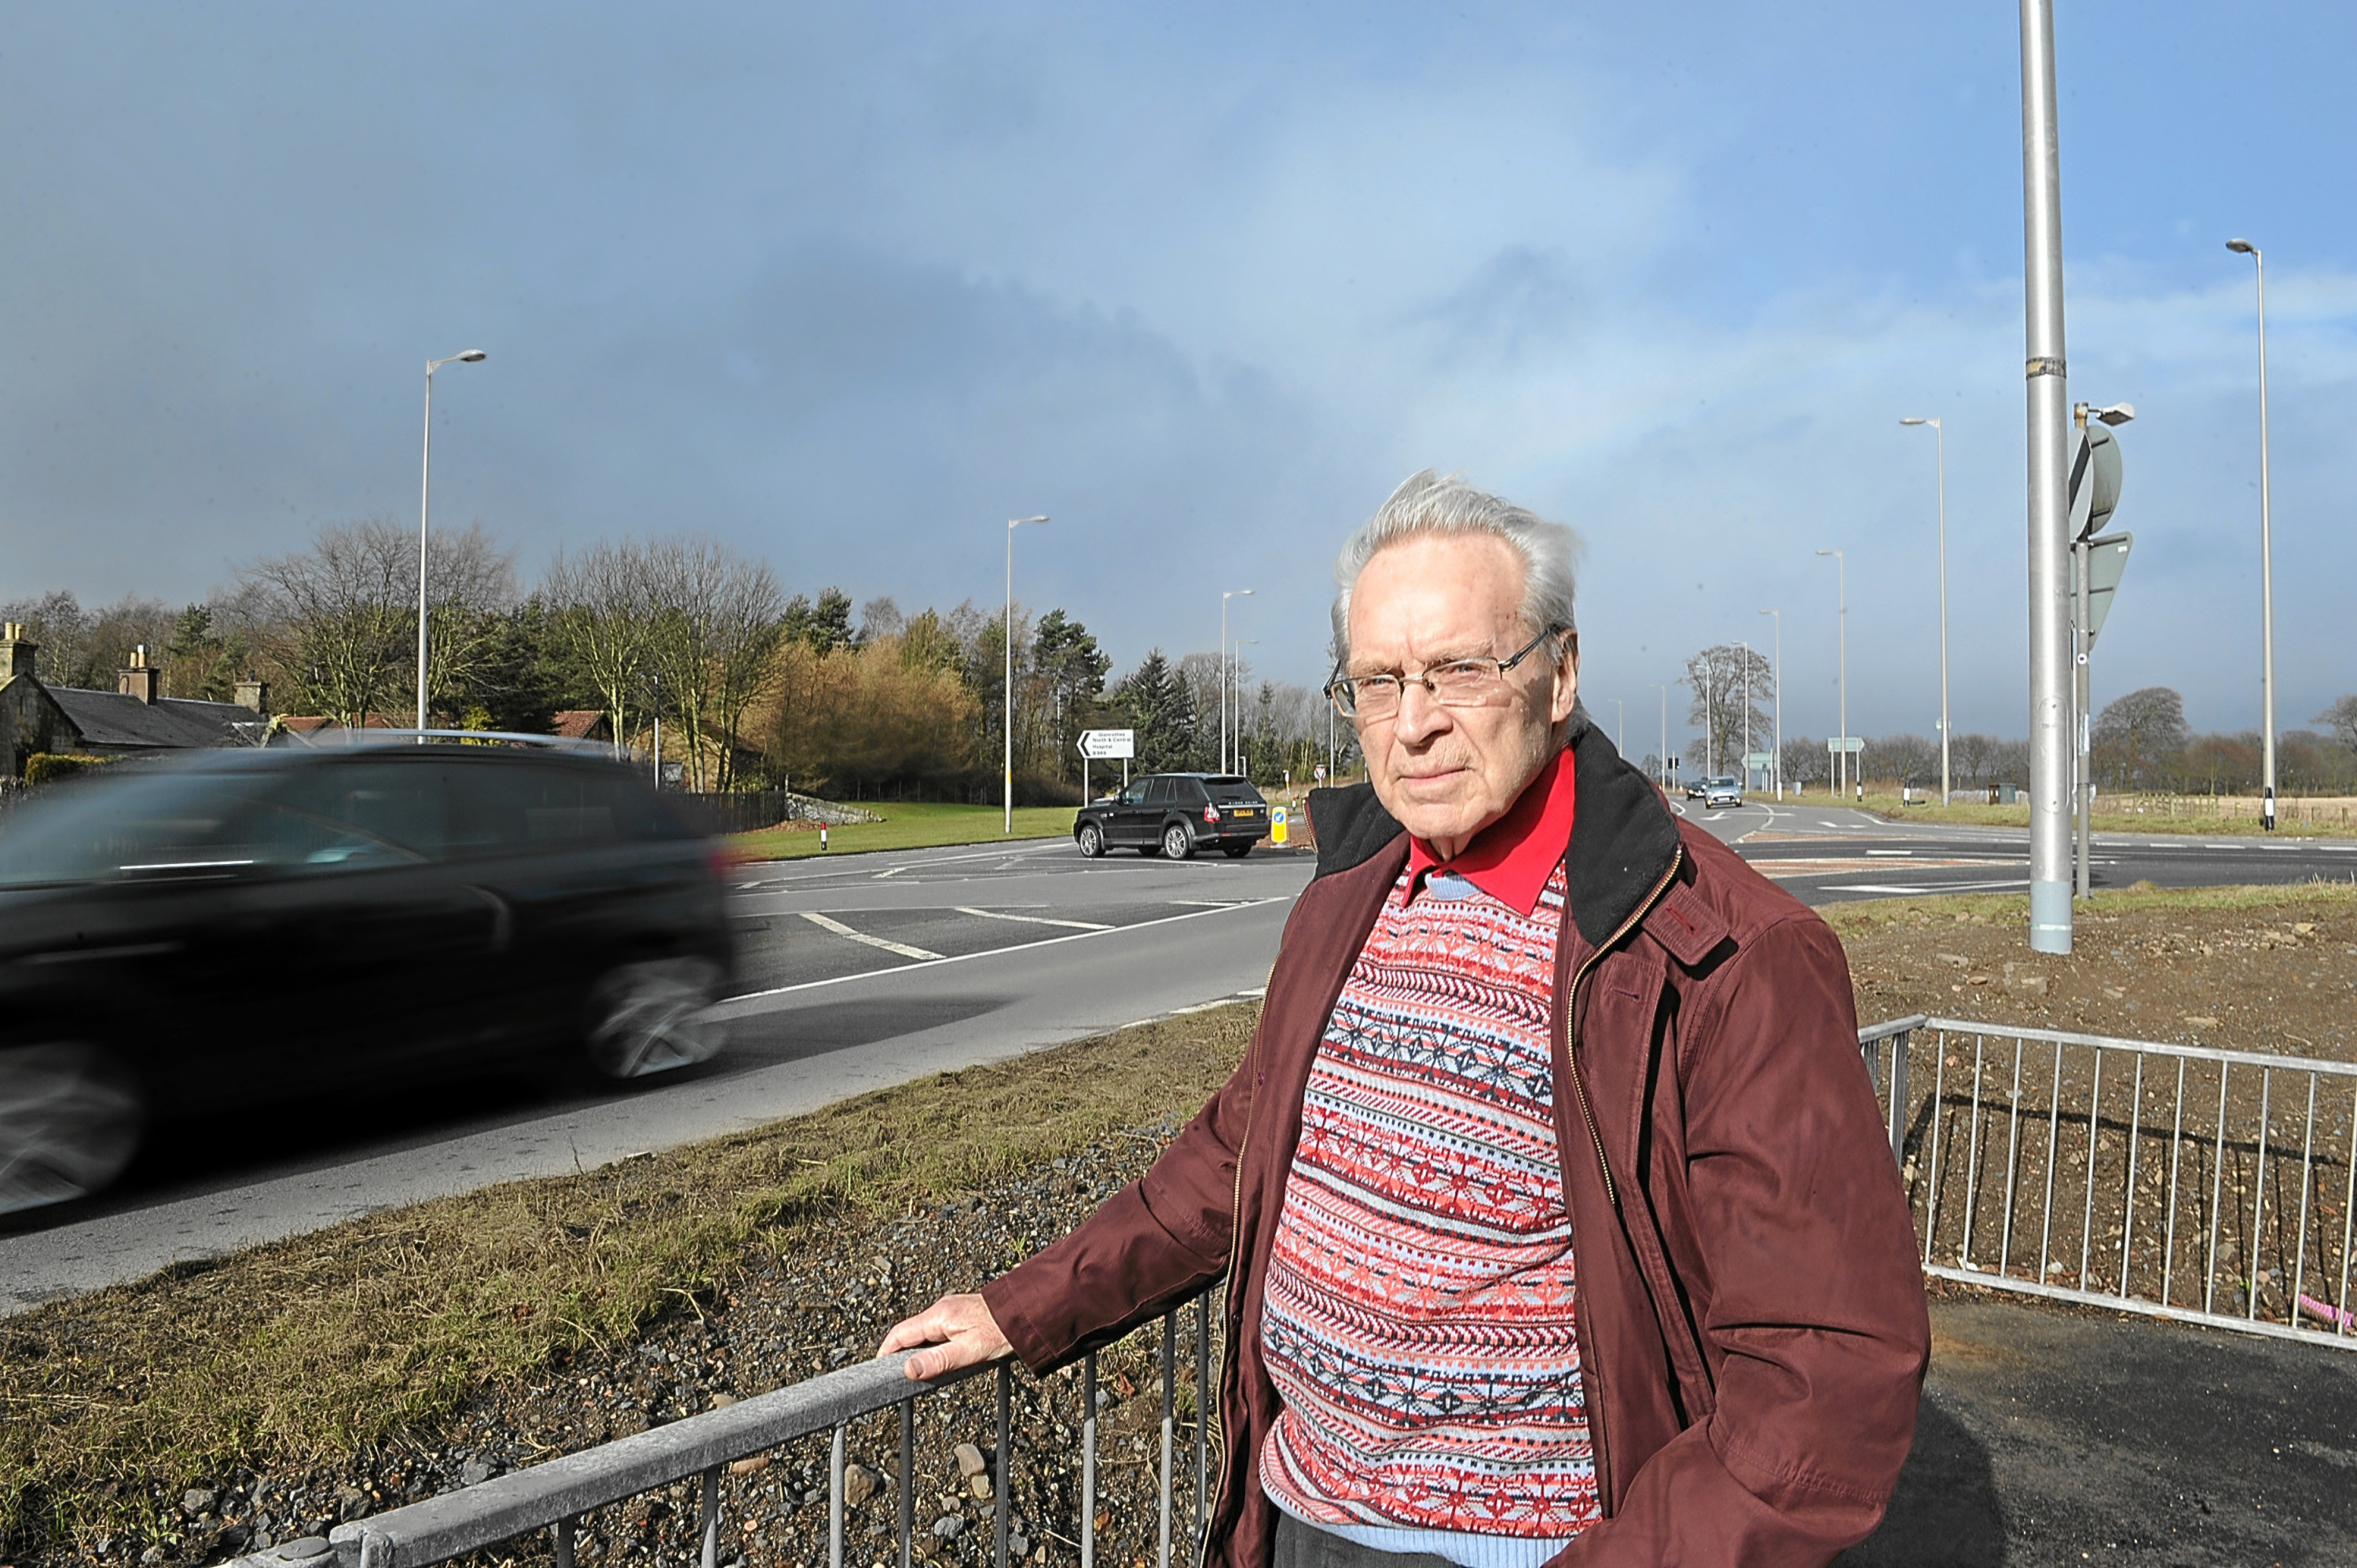 Ron Page who is campaigning for safety improvements to the road